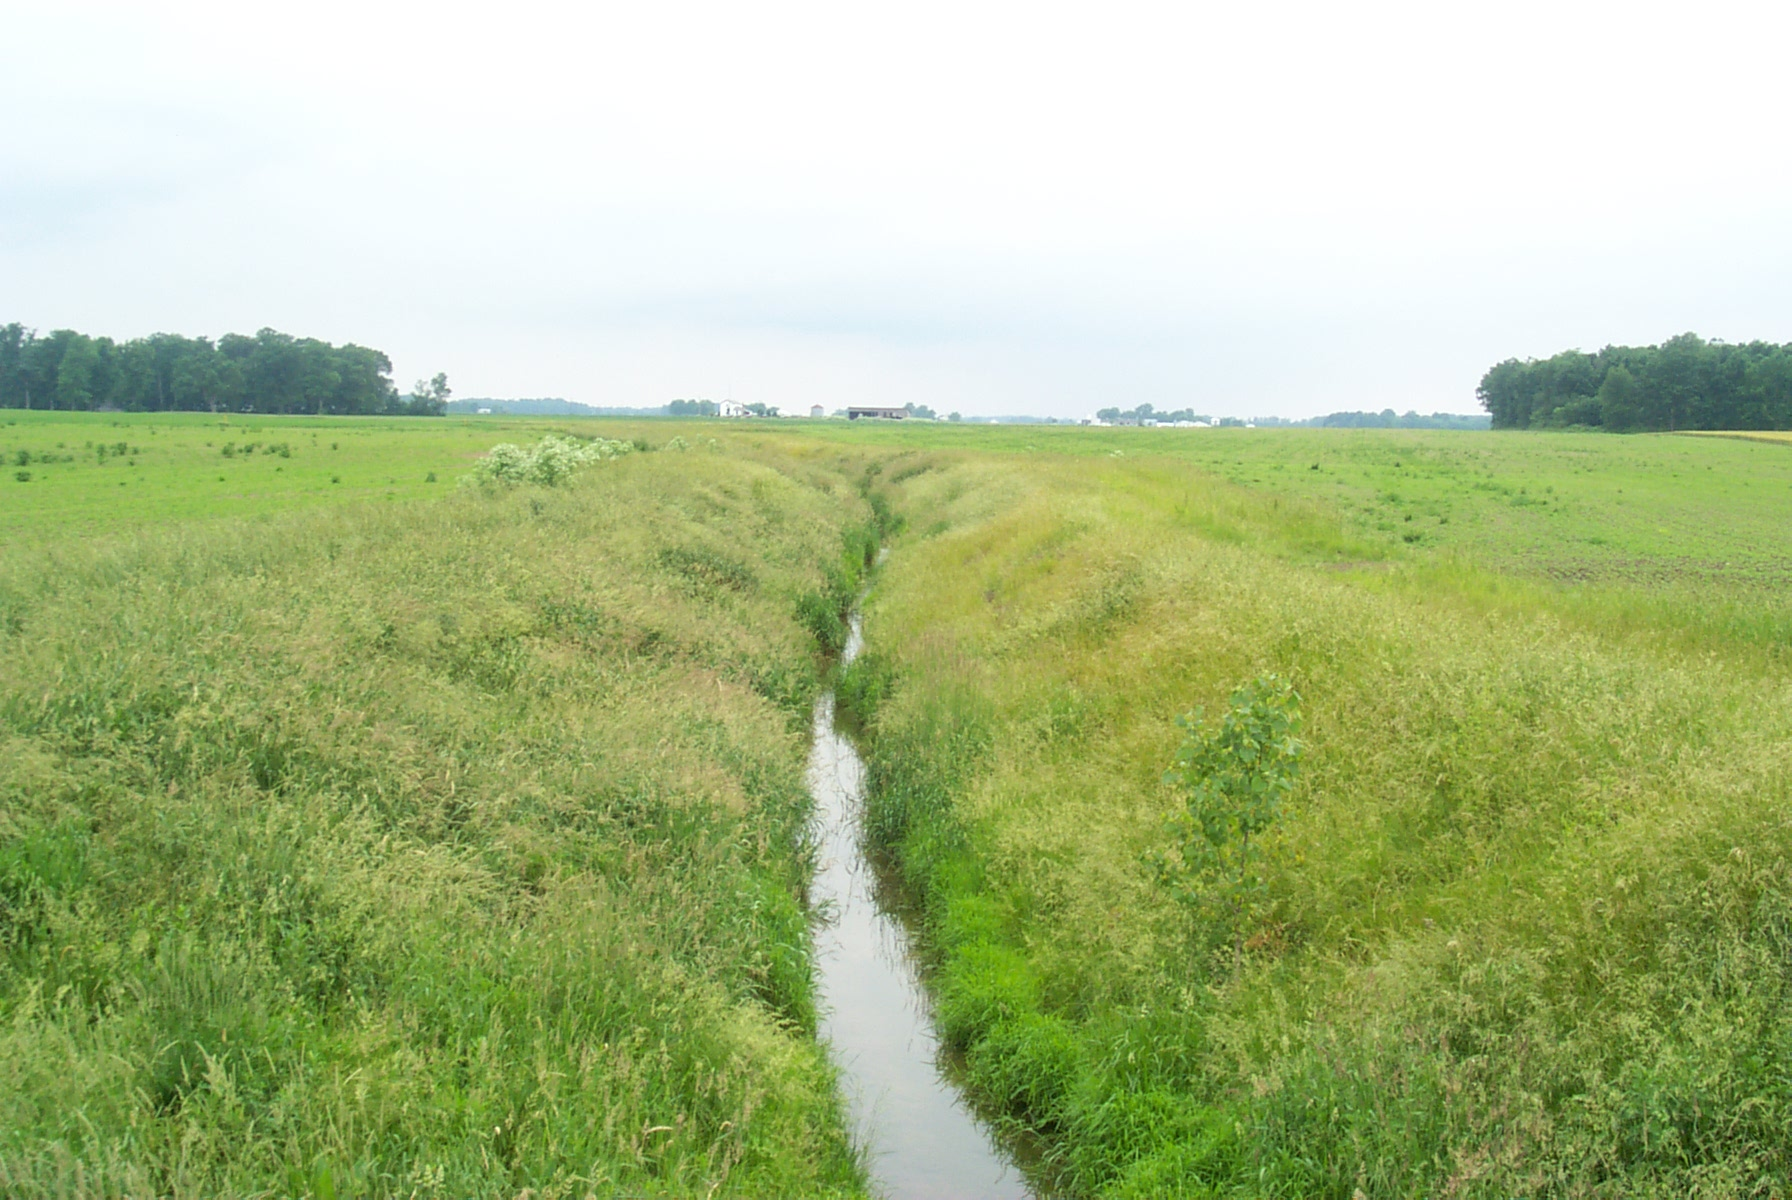 filterstrip, filterstrip with water in it in an open field